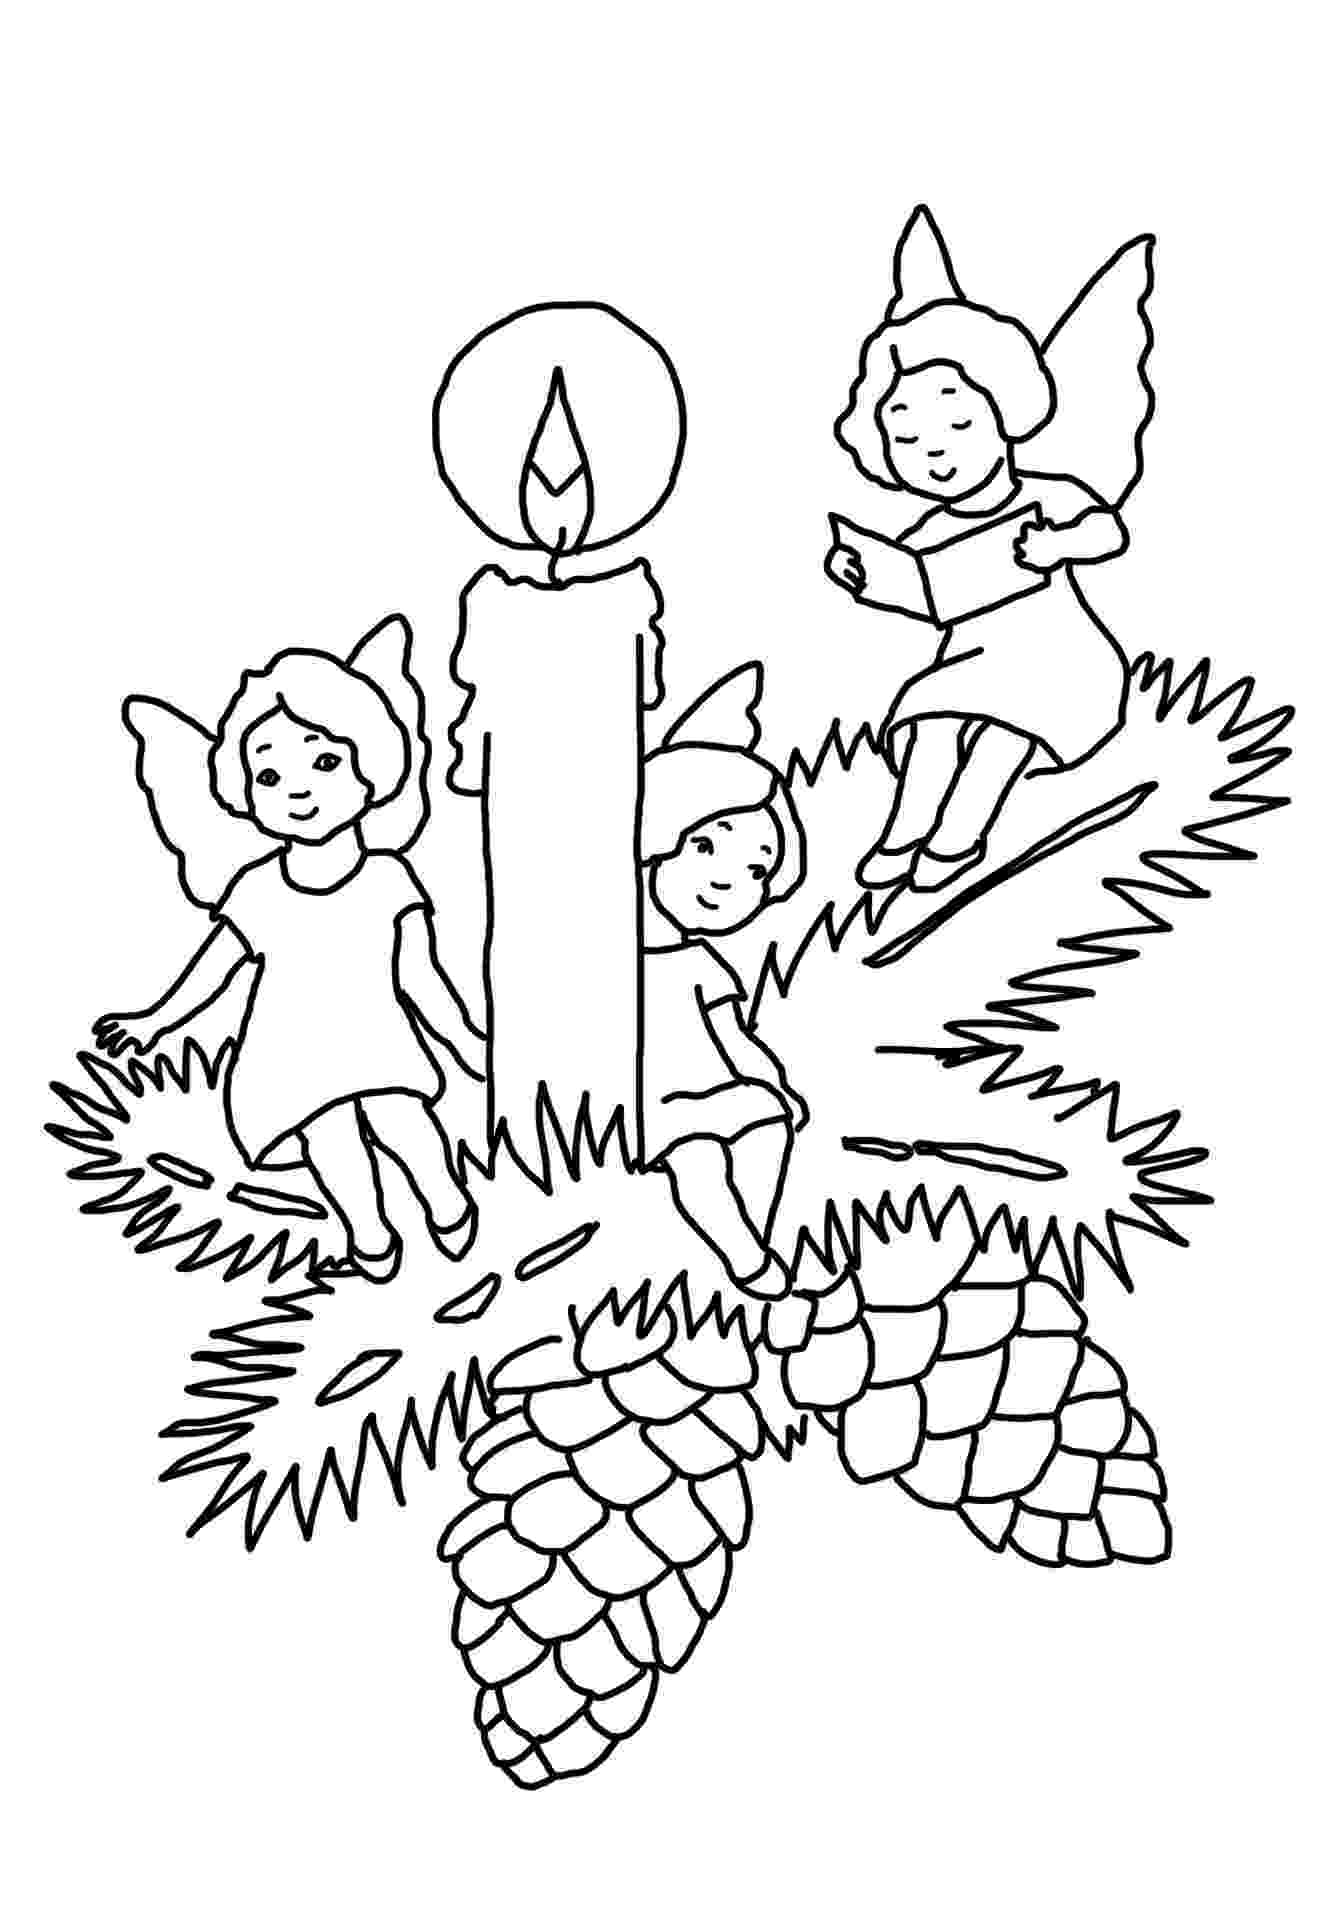 chirstmas coloring pages christmas coloring pages to print free coloring pages chirstmas